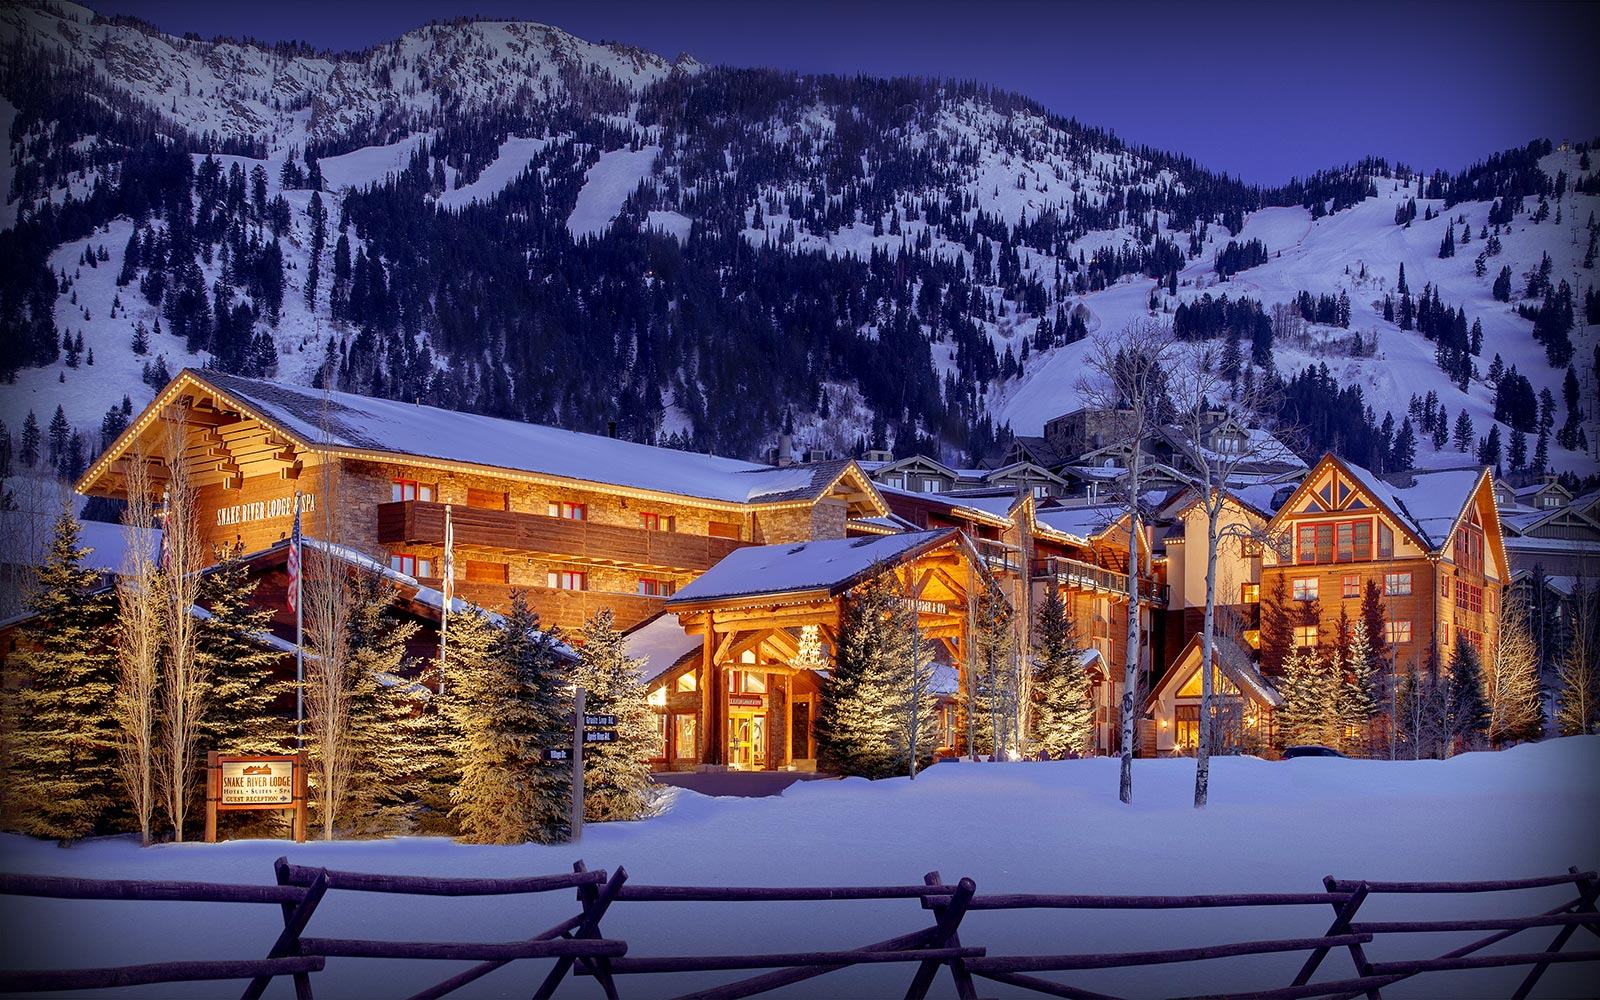 teton village single girls Best restaurants in grand teton national park the dining options in the tetons run the scale from quick cafeteria grub to one of the finest restaurants in the entire national park system.